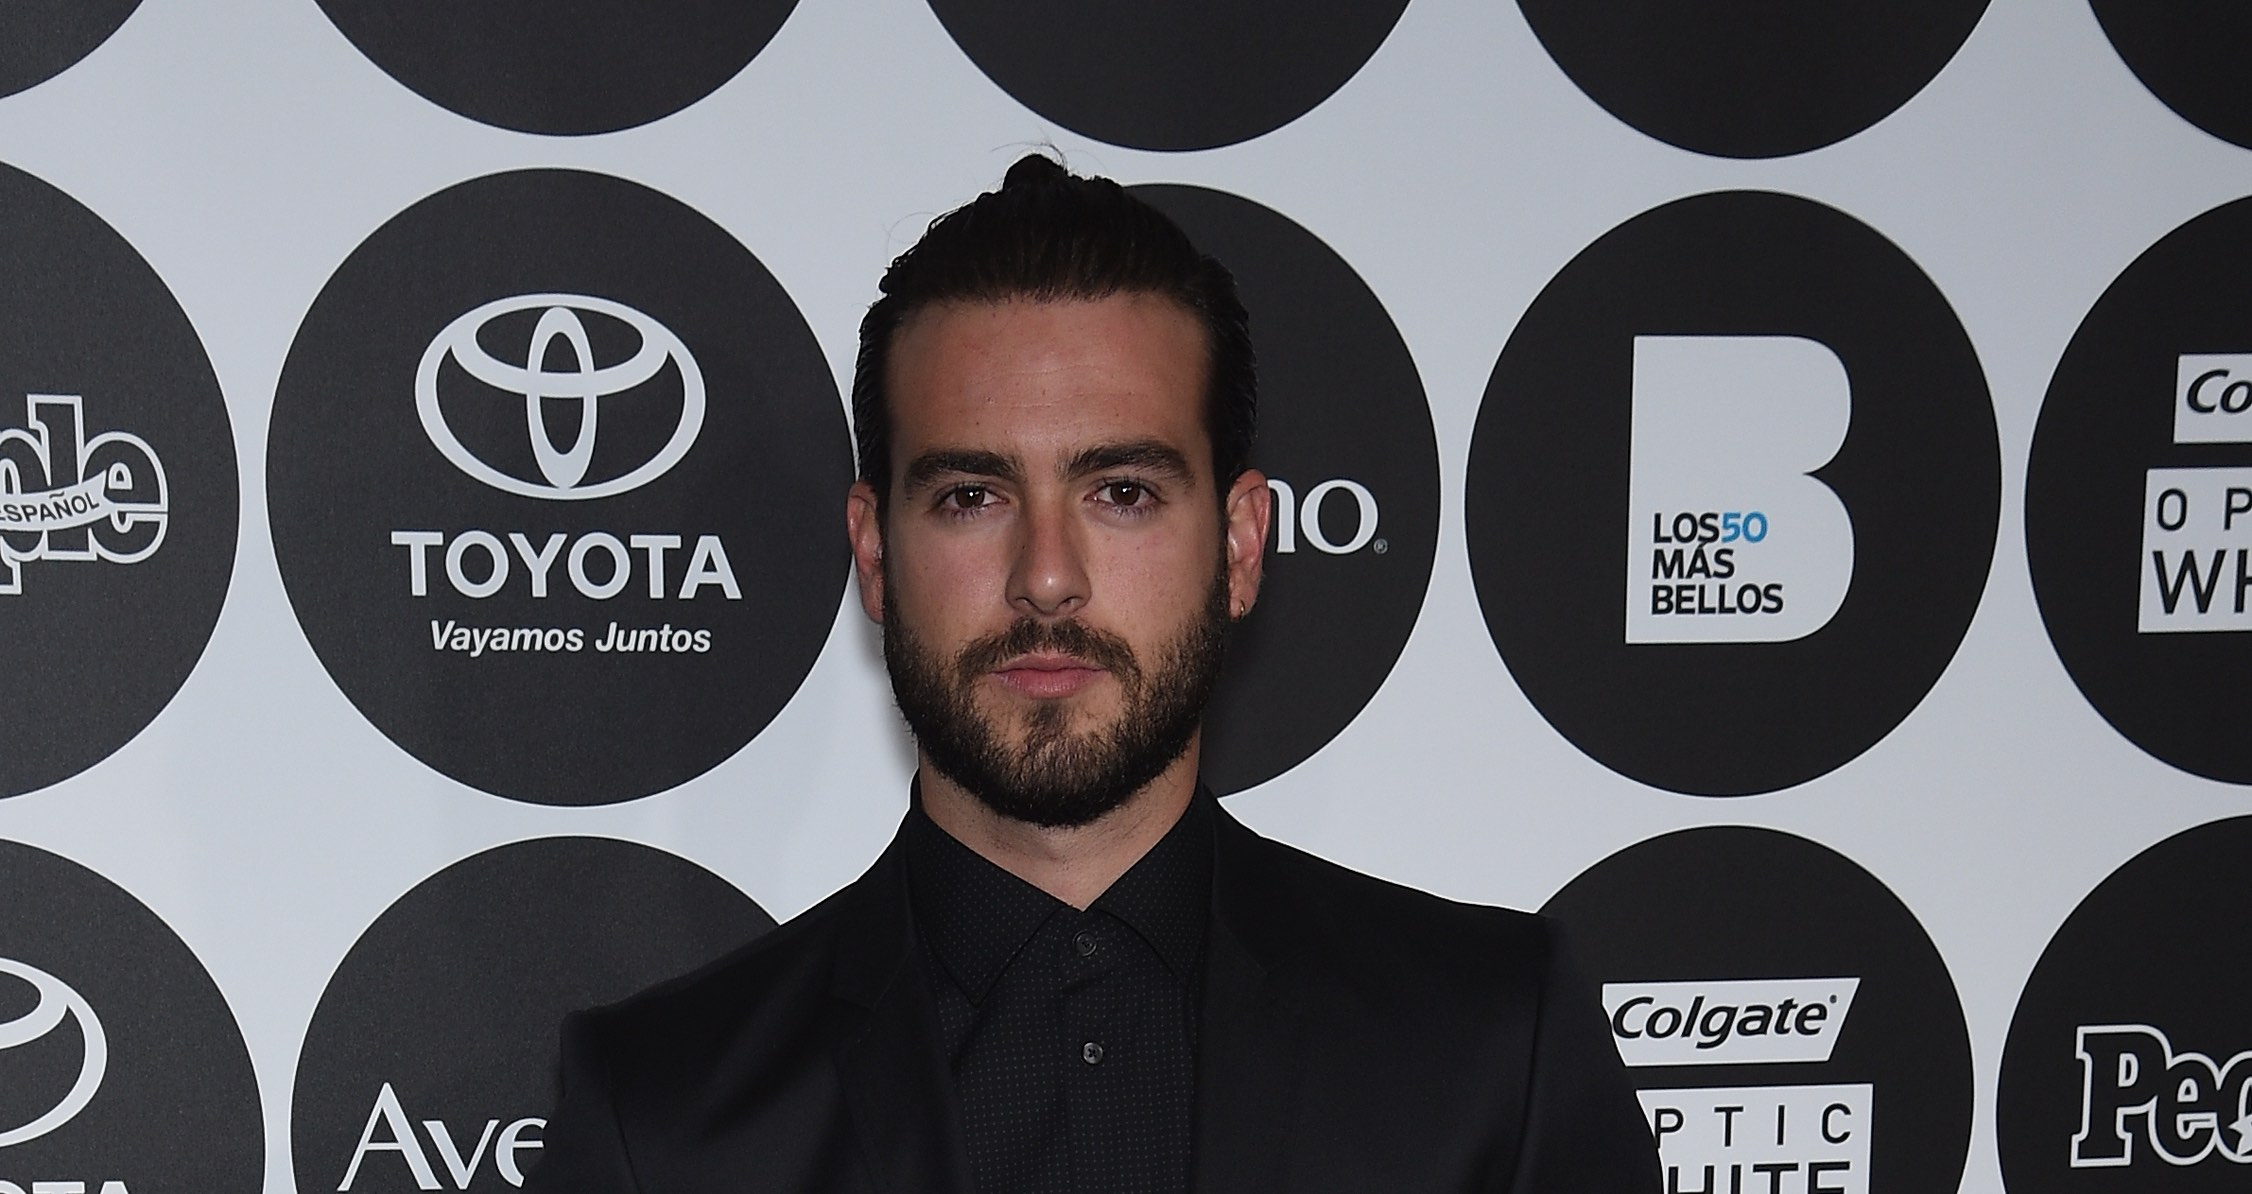 Novela Actor Pablo Lyle Under House Arrest After 63-Year-Old Man He Punched Dies